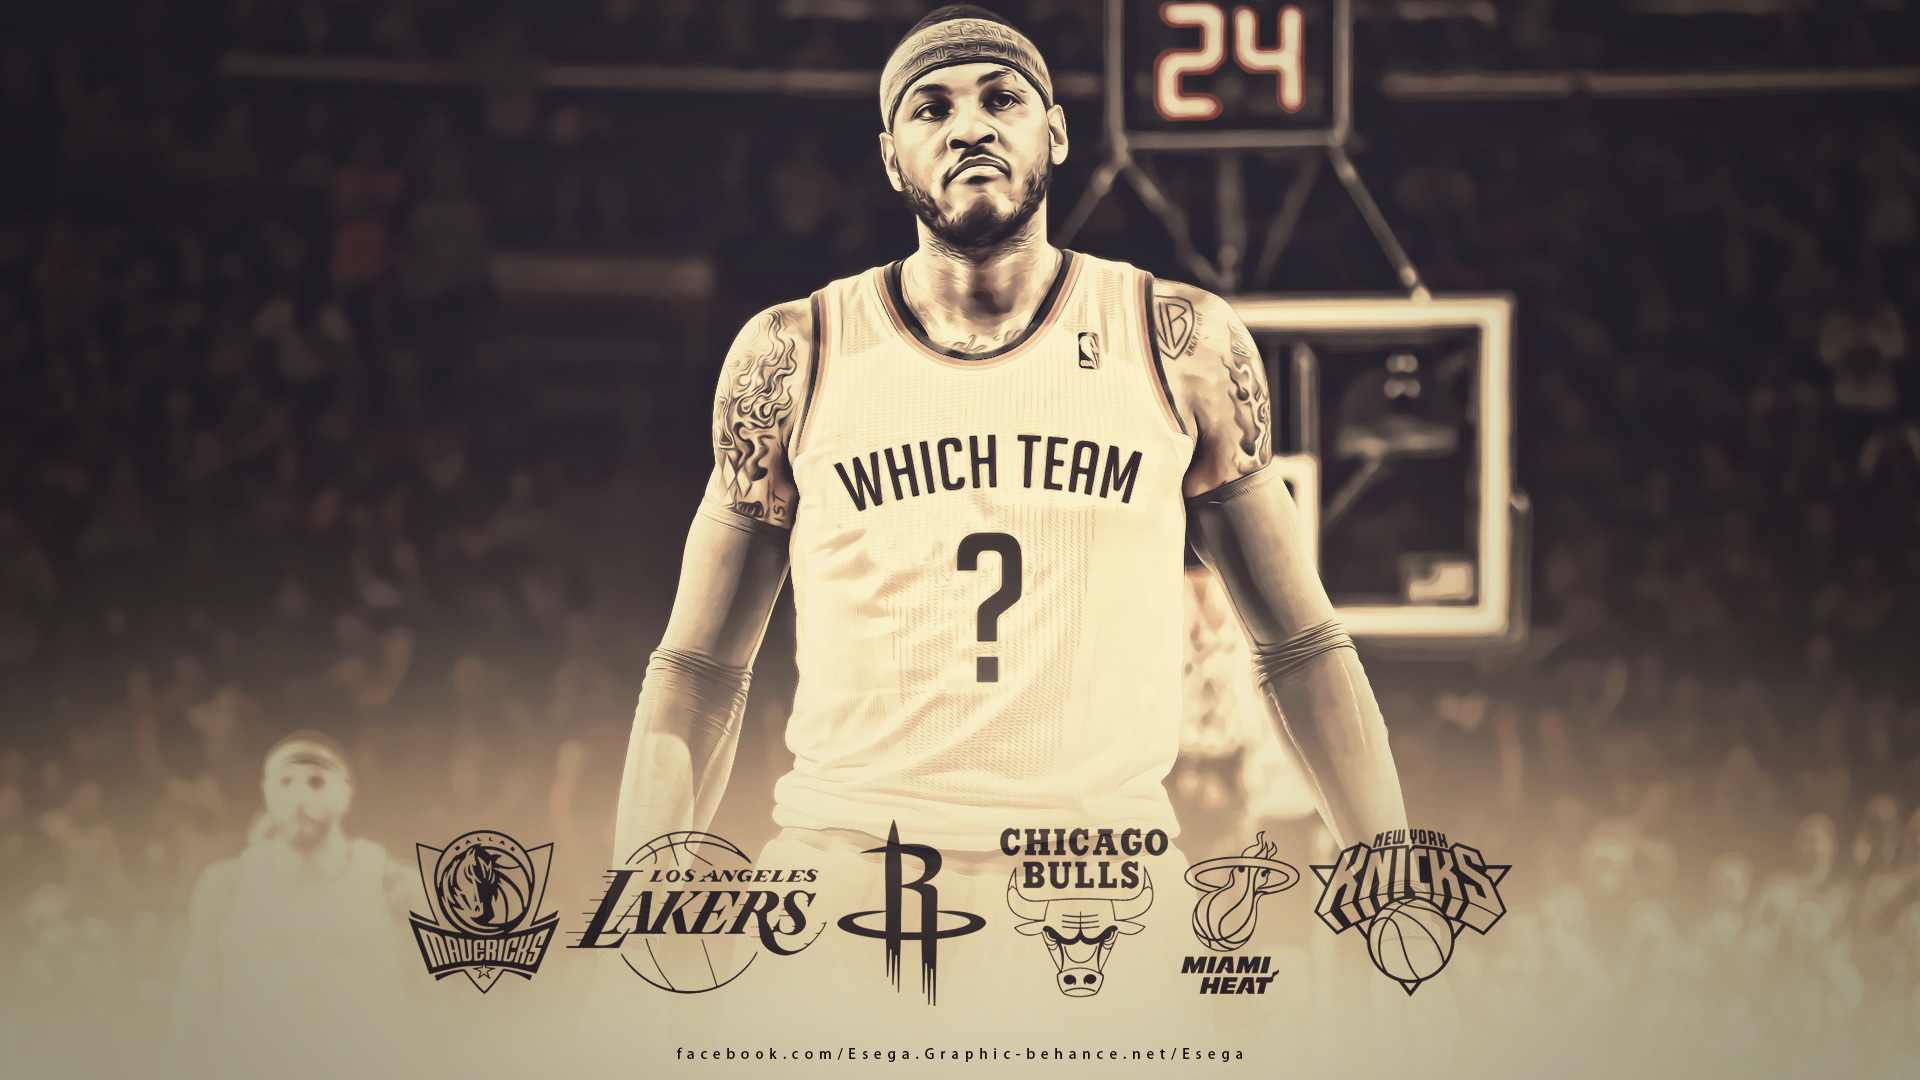 Carmelo anthony 2014 free agency wallpaper basketball wallpapers carmelo anthony 2014 free agency wallpaper voltagebd Images